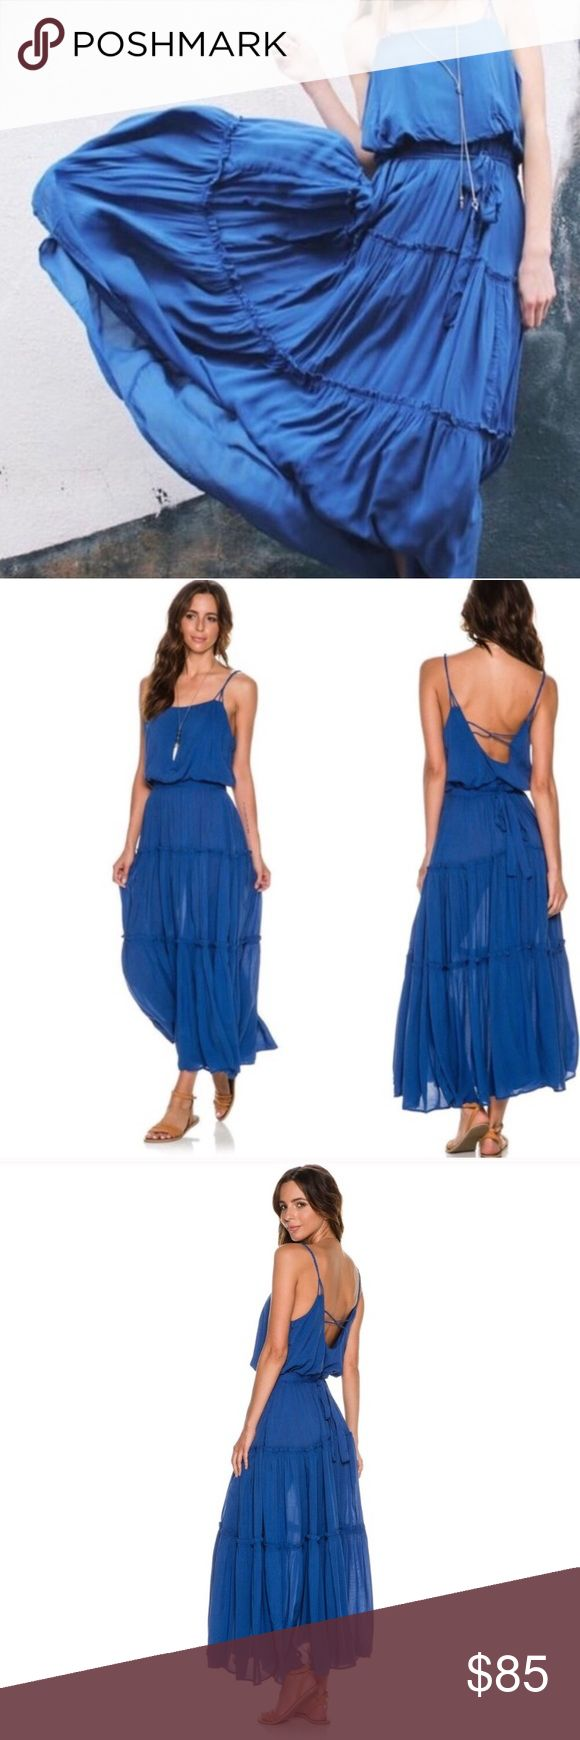 """FREE PEOPLE maxi dress NWT FREE PEOPLE maxi dress with an elasticize waist with an adjustable tie. Ruffle trim throughout and low back. Lined and 100% rayon. Approx. 29"""" waist and appx. 48.5"""" length (based on size small).   Size: M Retail: $128 Free People Dresses Maxi"""